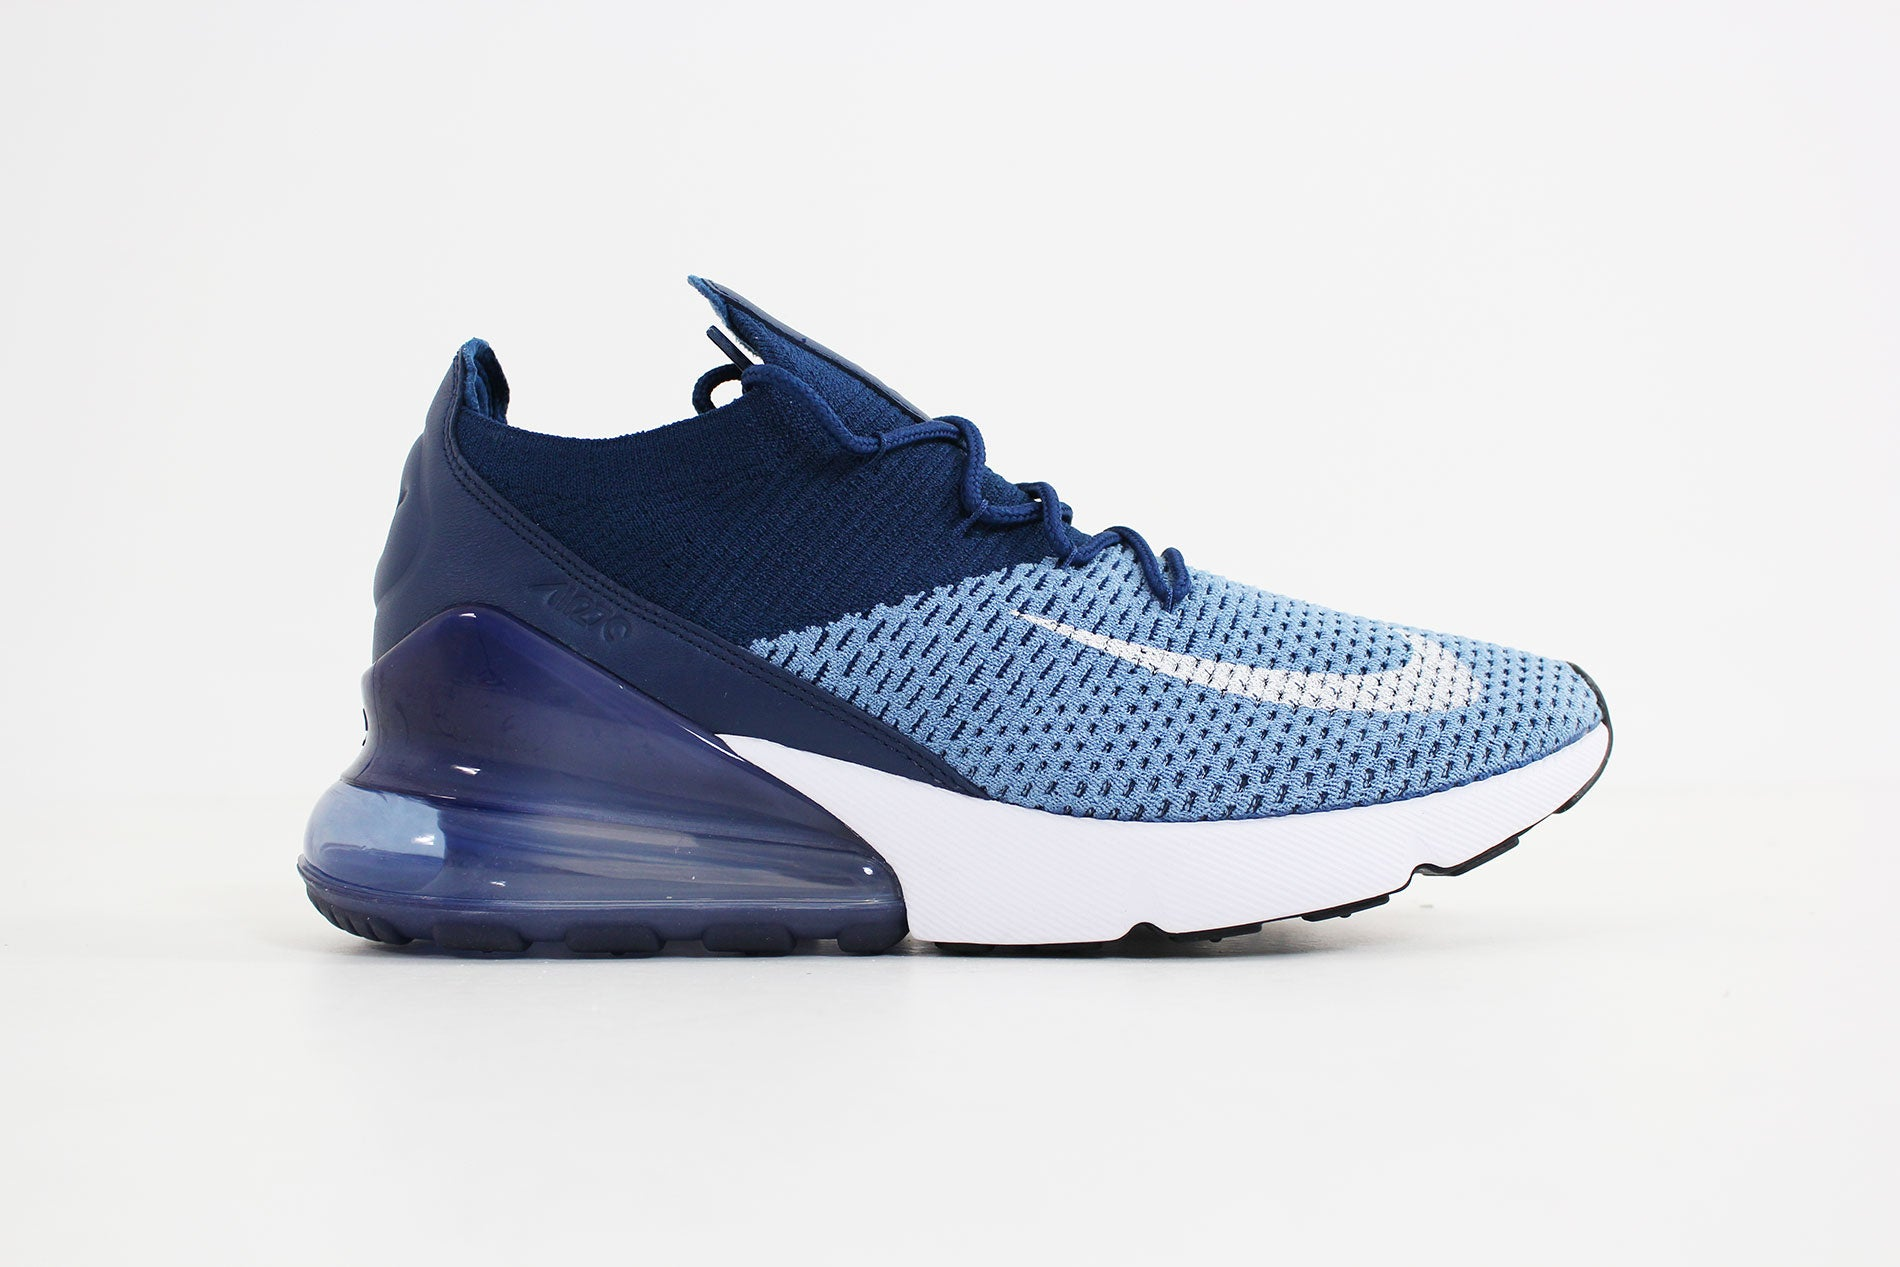 Nike Air Max 270 Flyknit Work BlueWhite Brave Blue Outlet